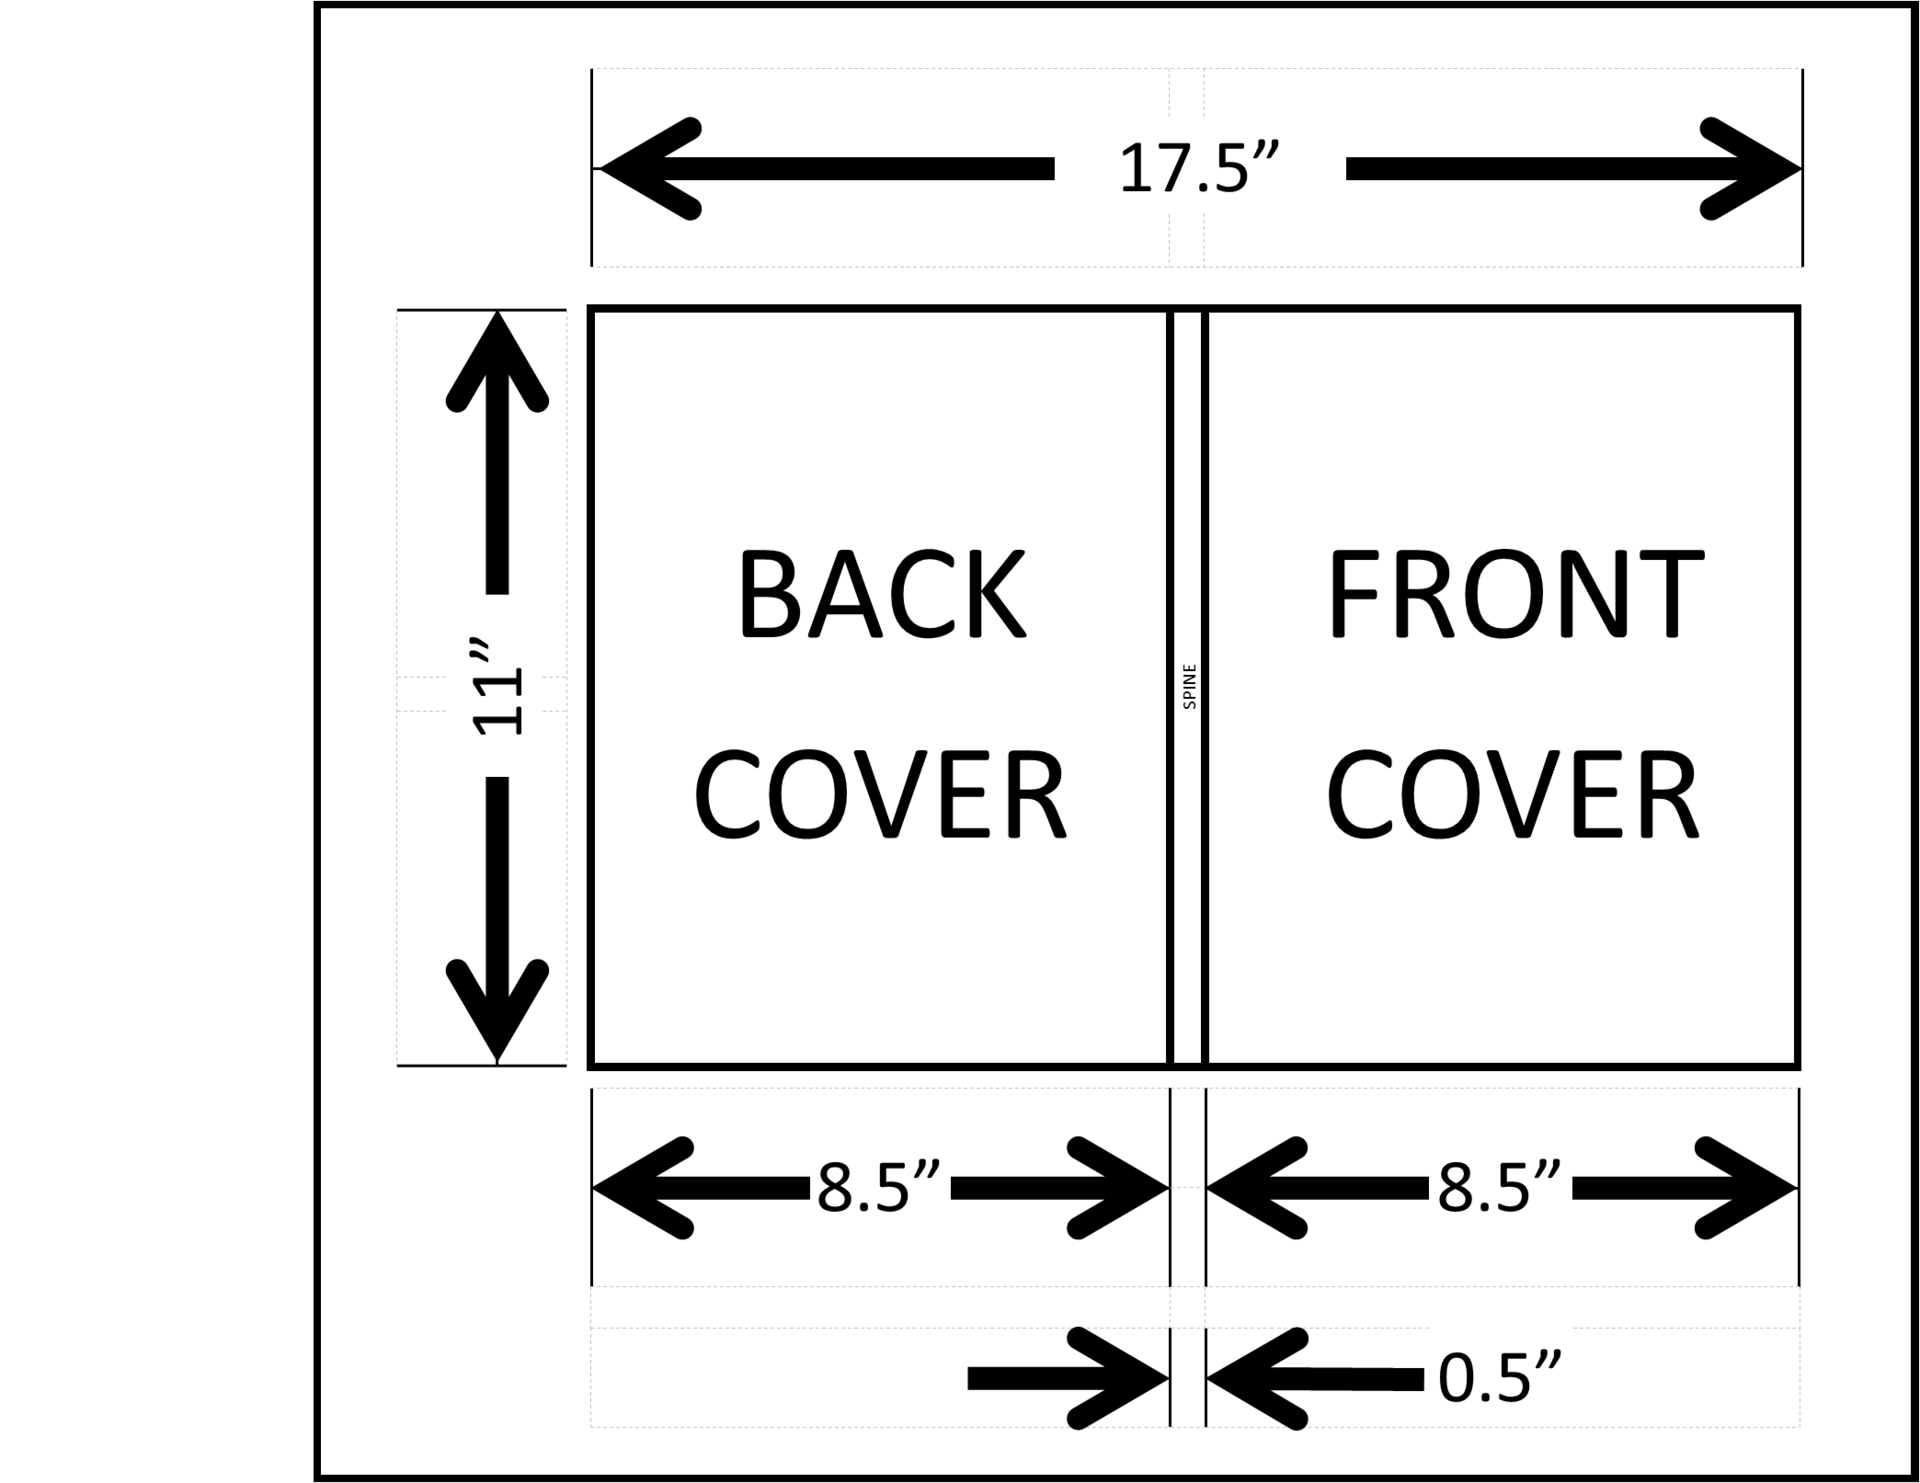 Dimensions of yearbook cover